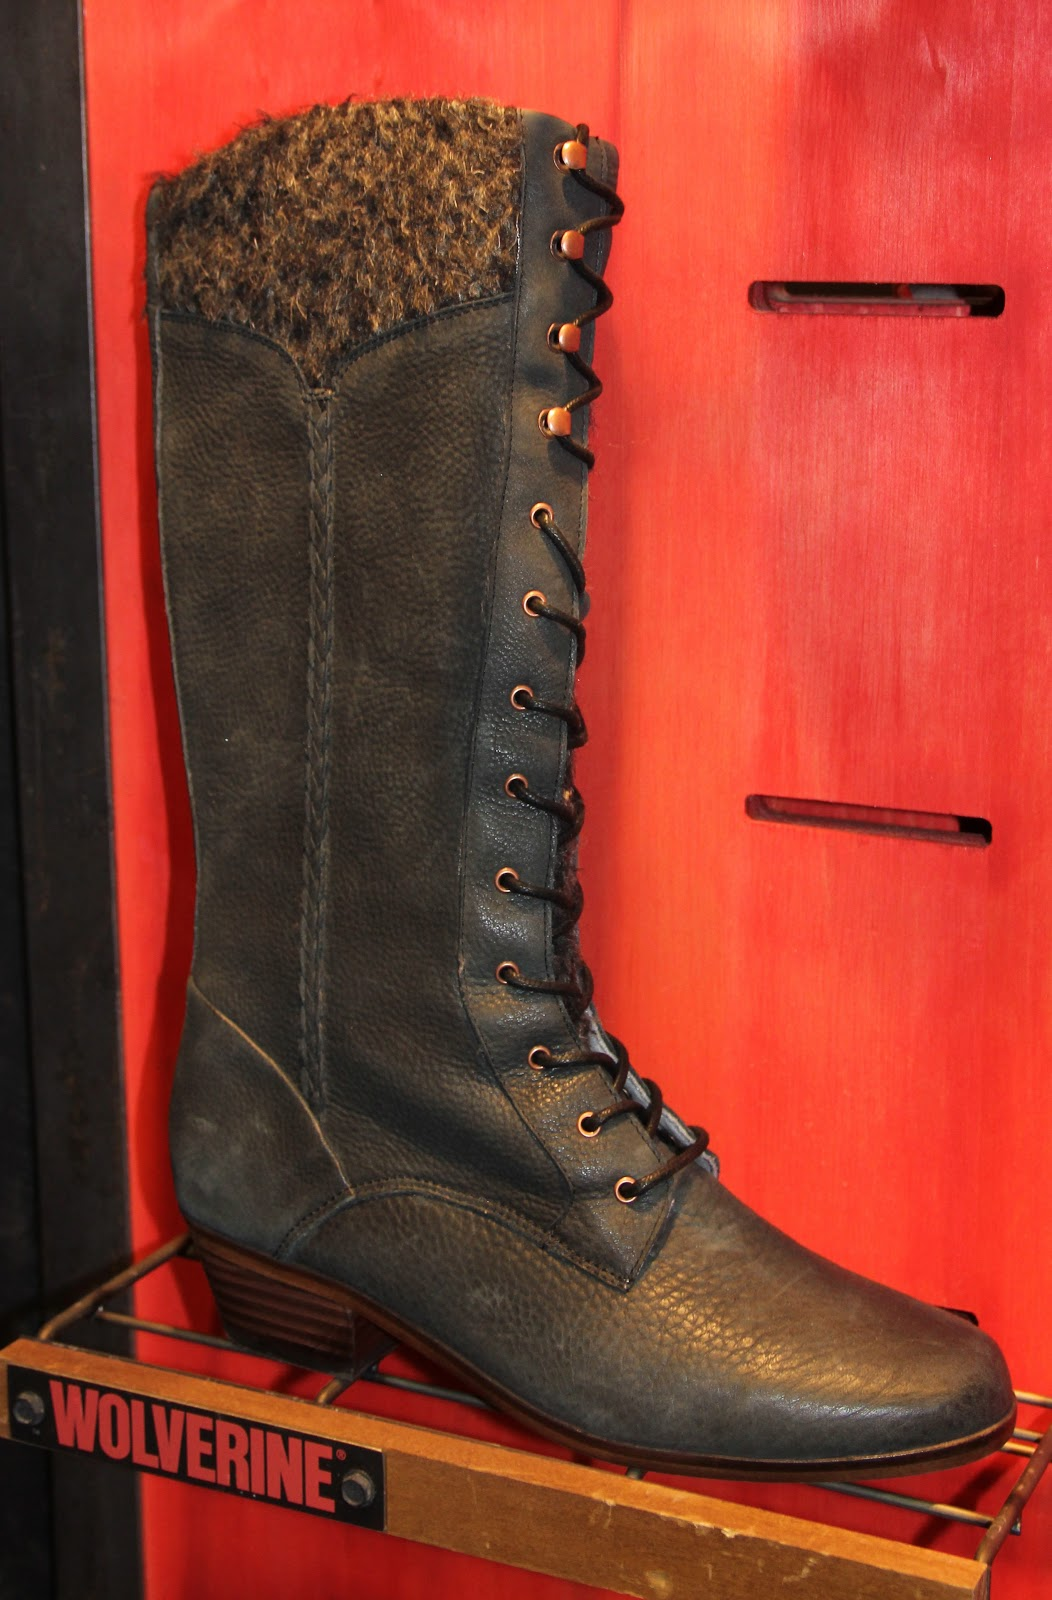 Historically a work/outdoor brand, Wolverine shoes/boots are seriously  perused by those wanting high-end kicks- with its vintage flavored 1000  Mile Rockford ...